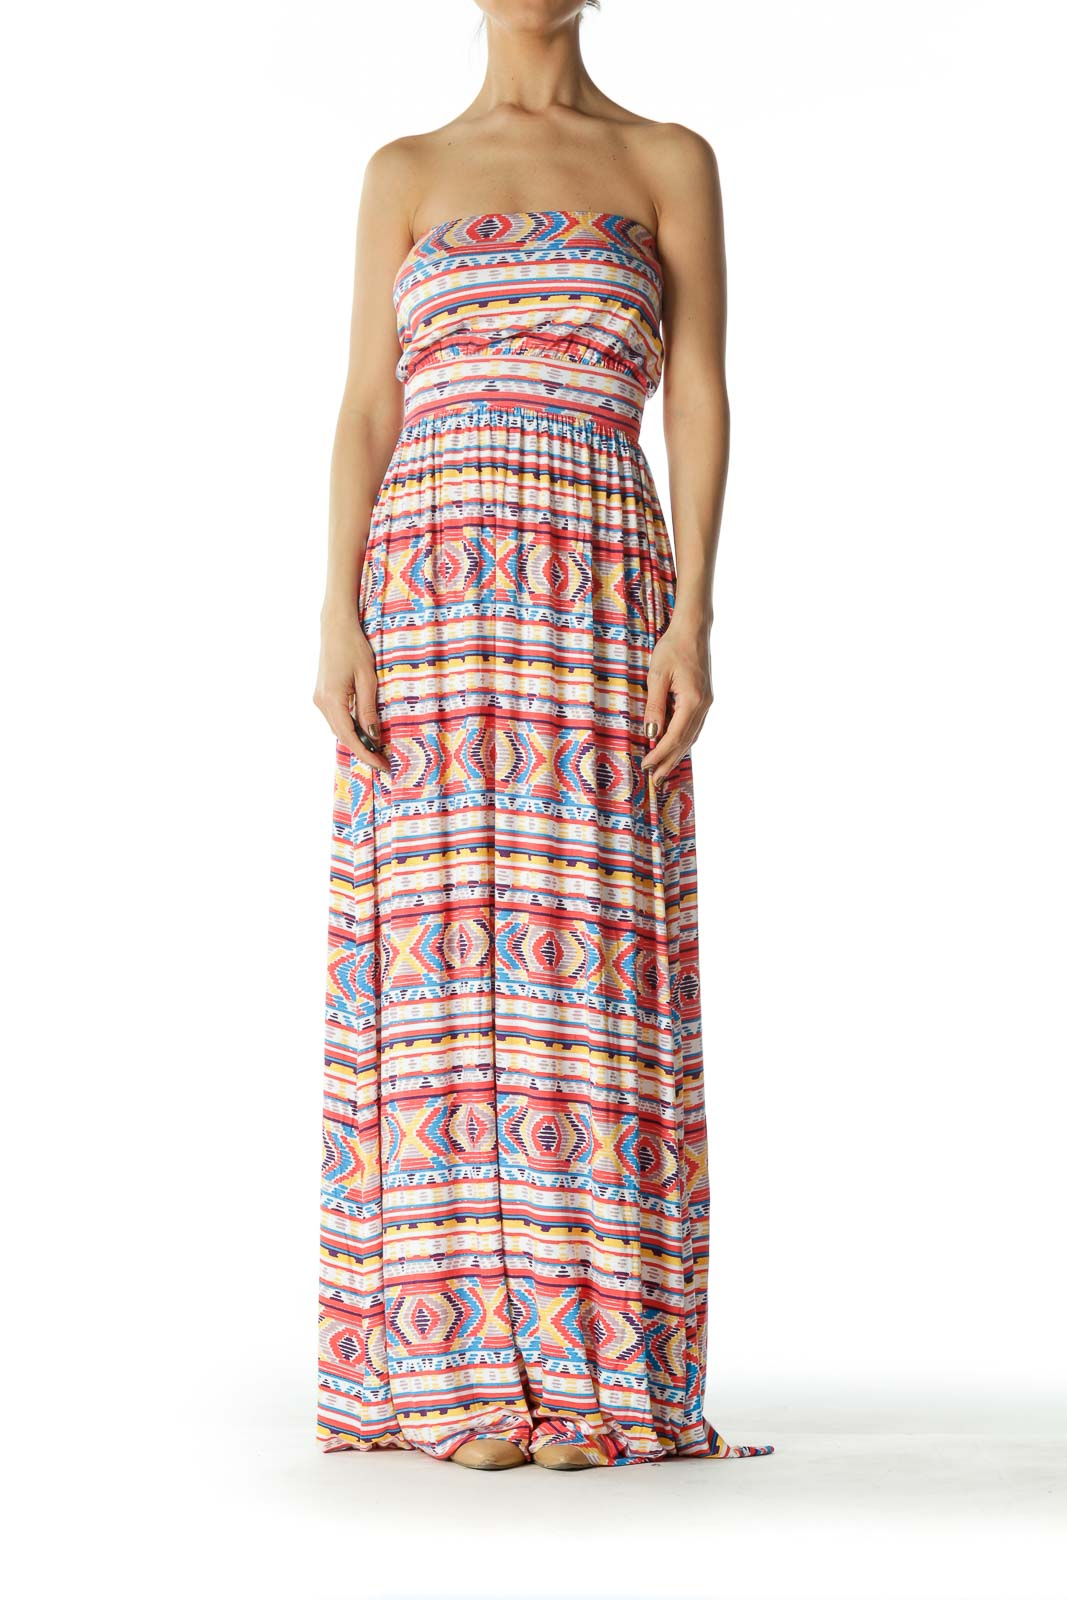 Orange and Multicolored Patterned Maxi Dress